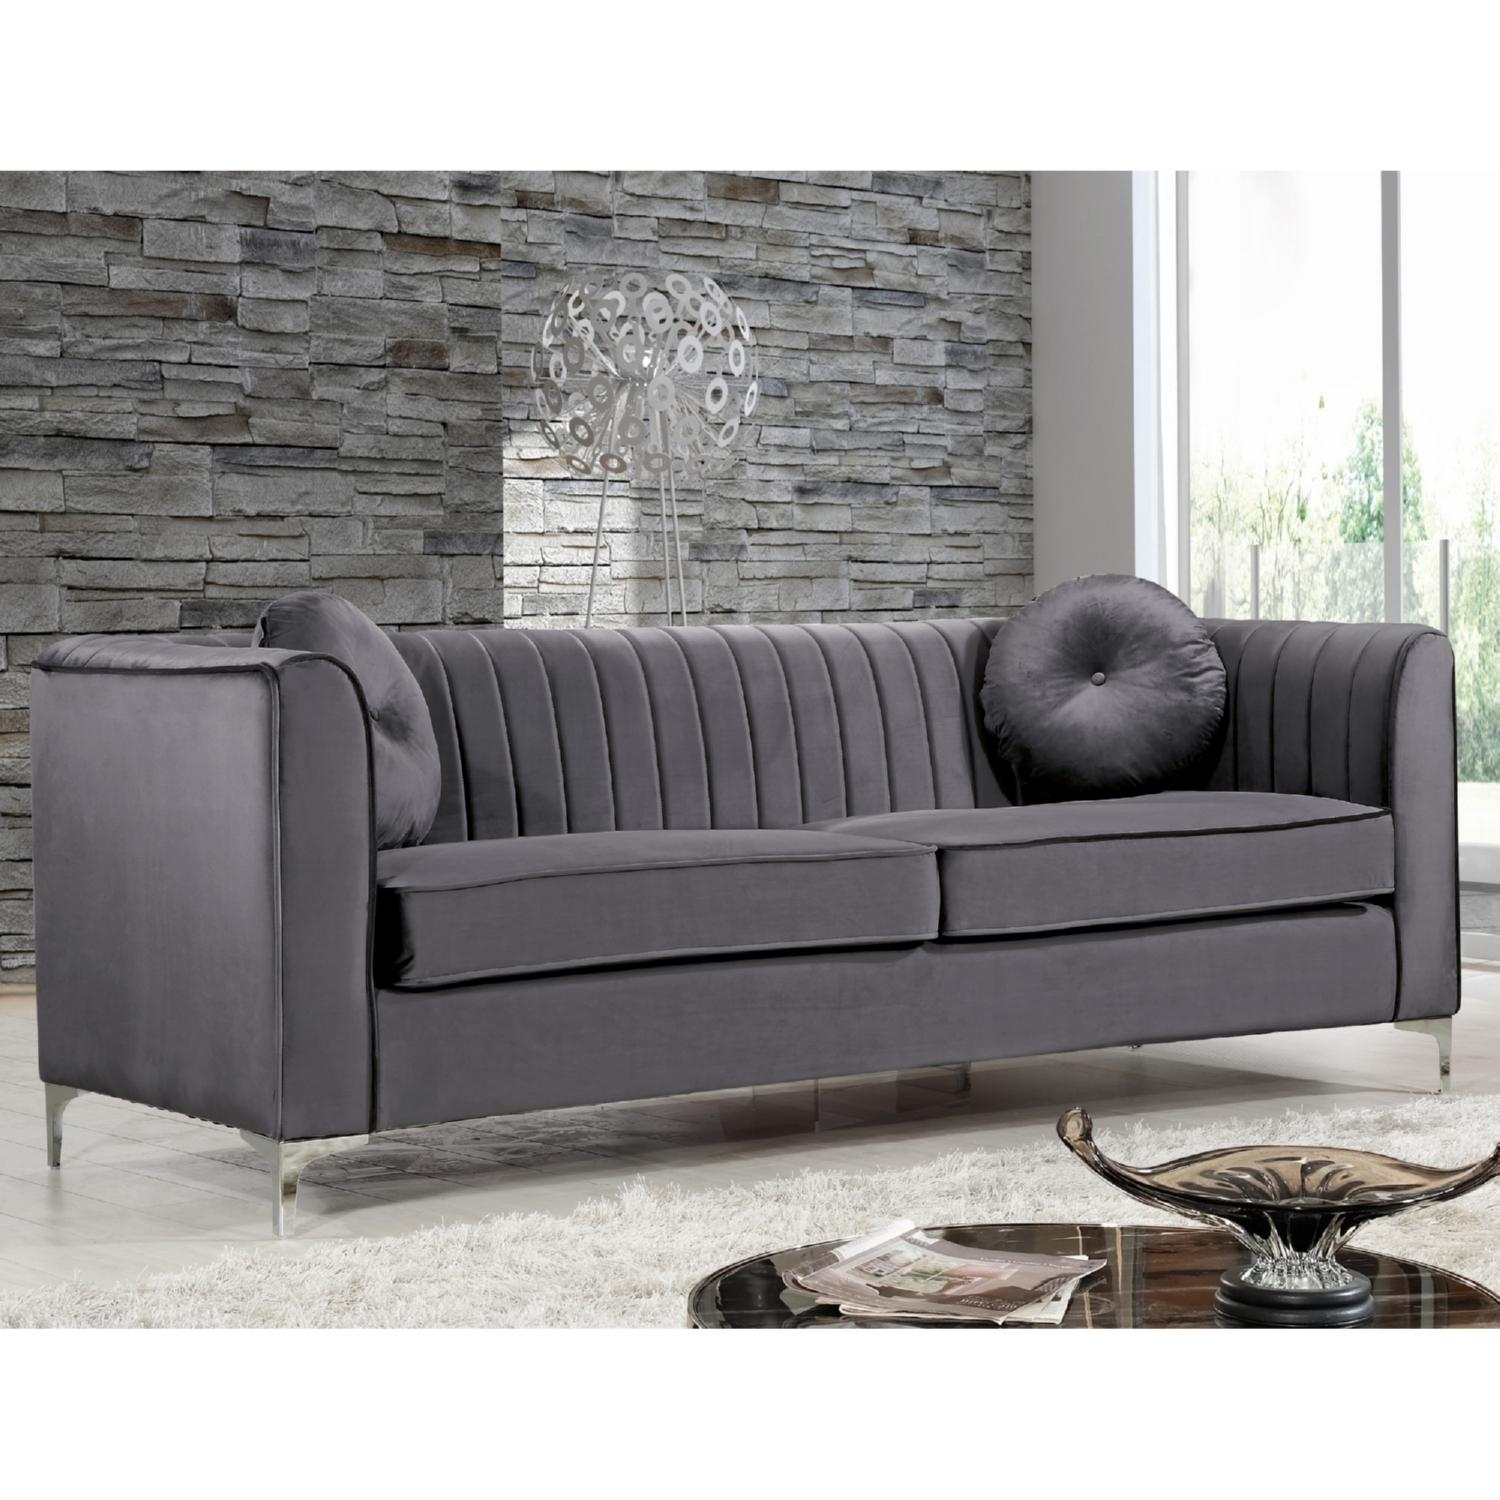 Furniture: Breathtaking Grey Velvet Sofa For Charming Home For Sofas With Chrome Legs (Image 9 of 20)